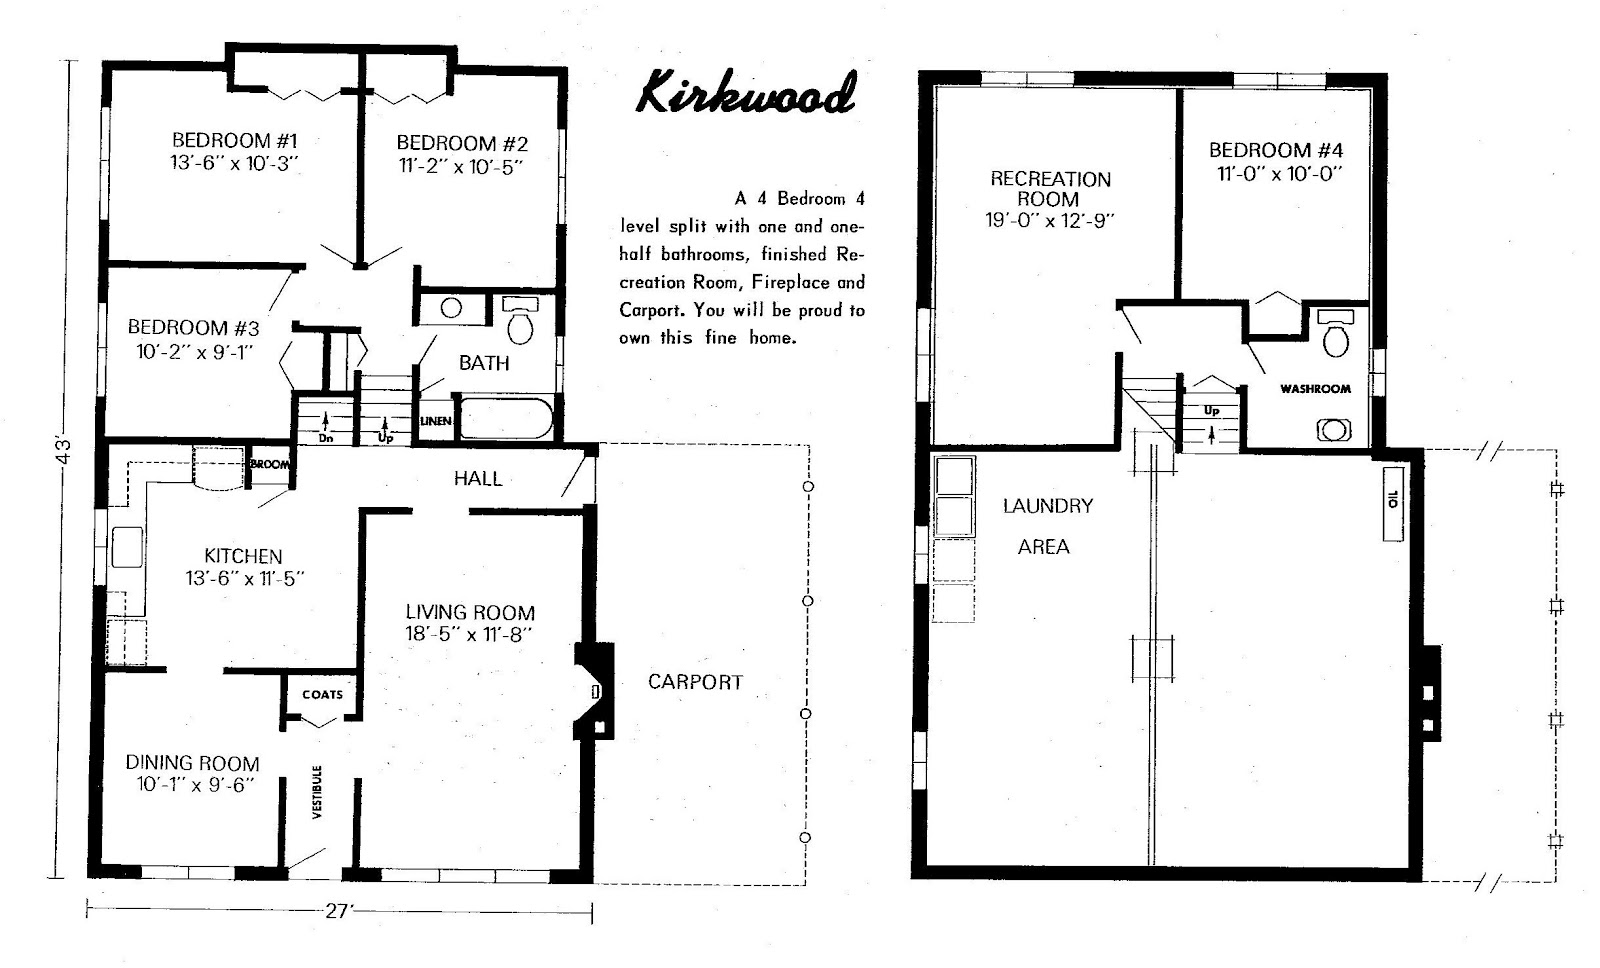 Bedroom Backsplit House Plans   ArtsSunday April